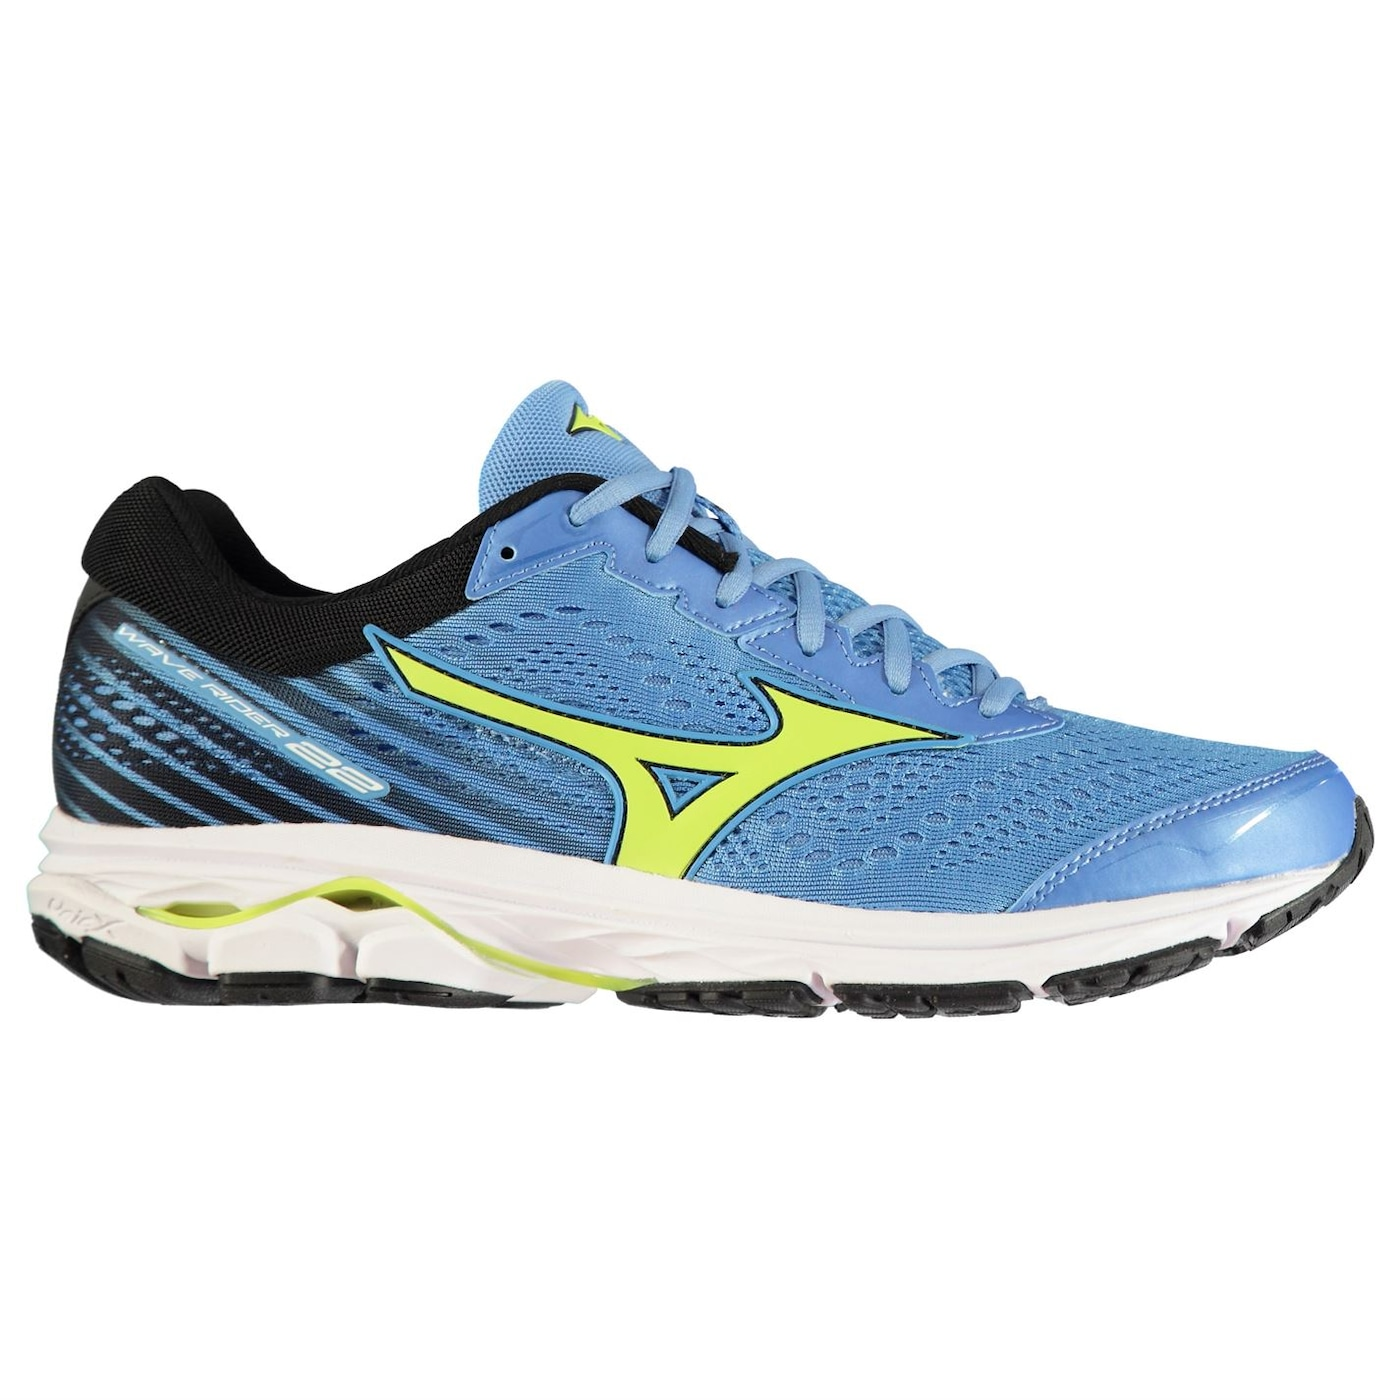 Mizuno Wave Rider 22 Mens Running Shoes